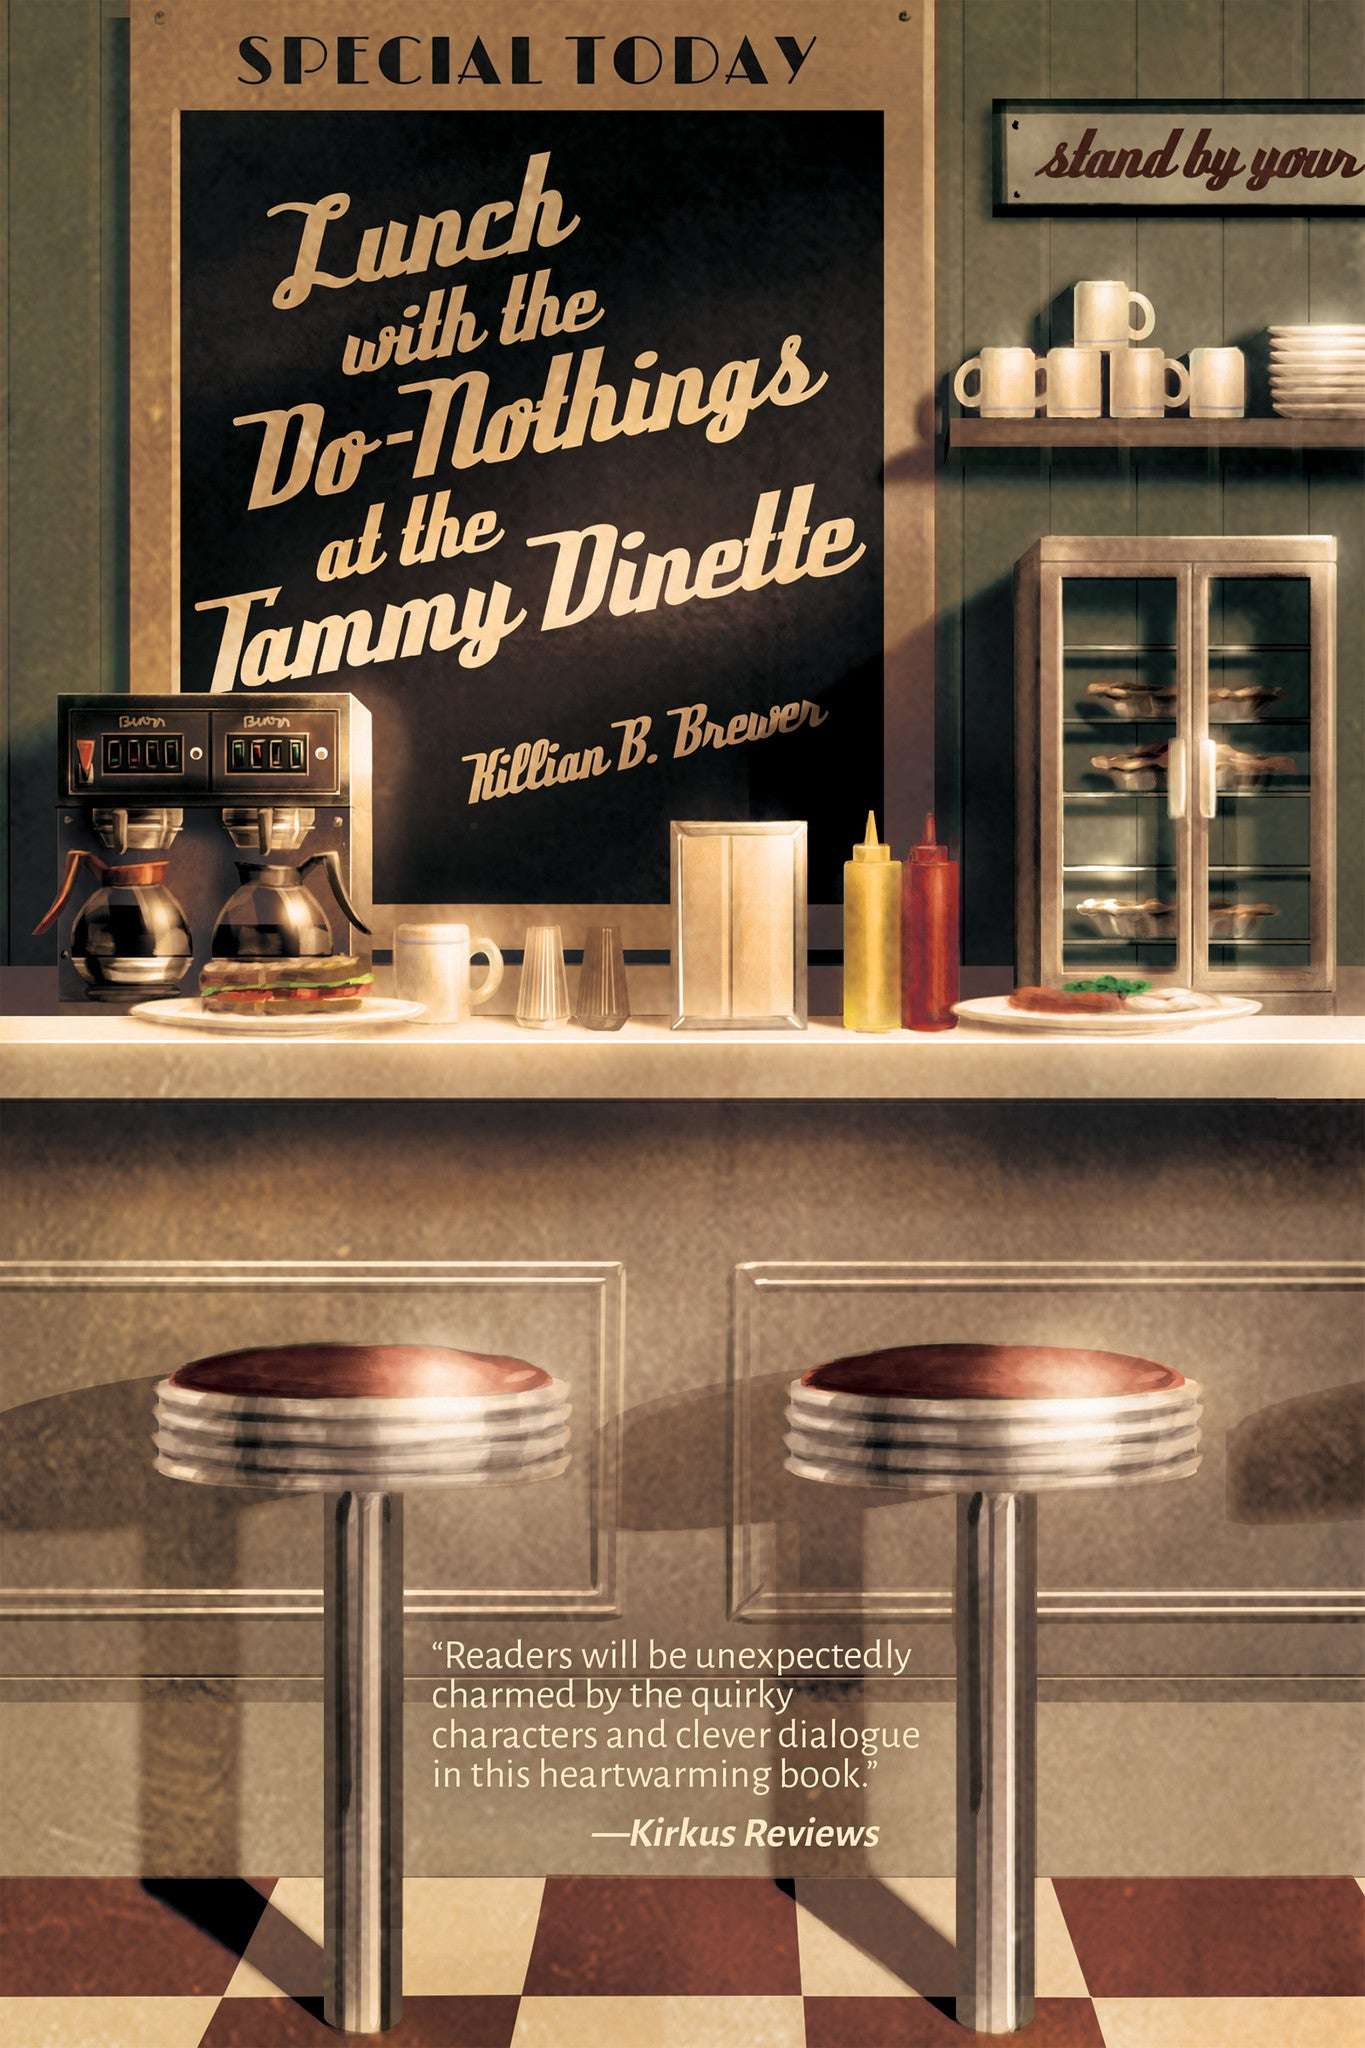 Lunch with the Do-Nothings at the Tammy Dinette (eBook package)